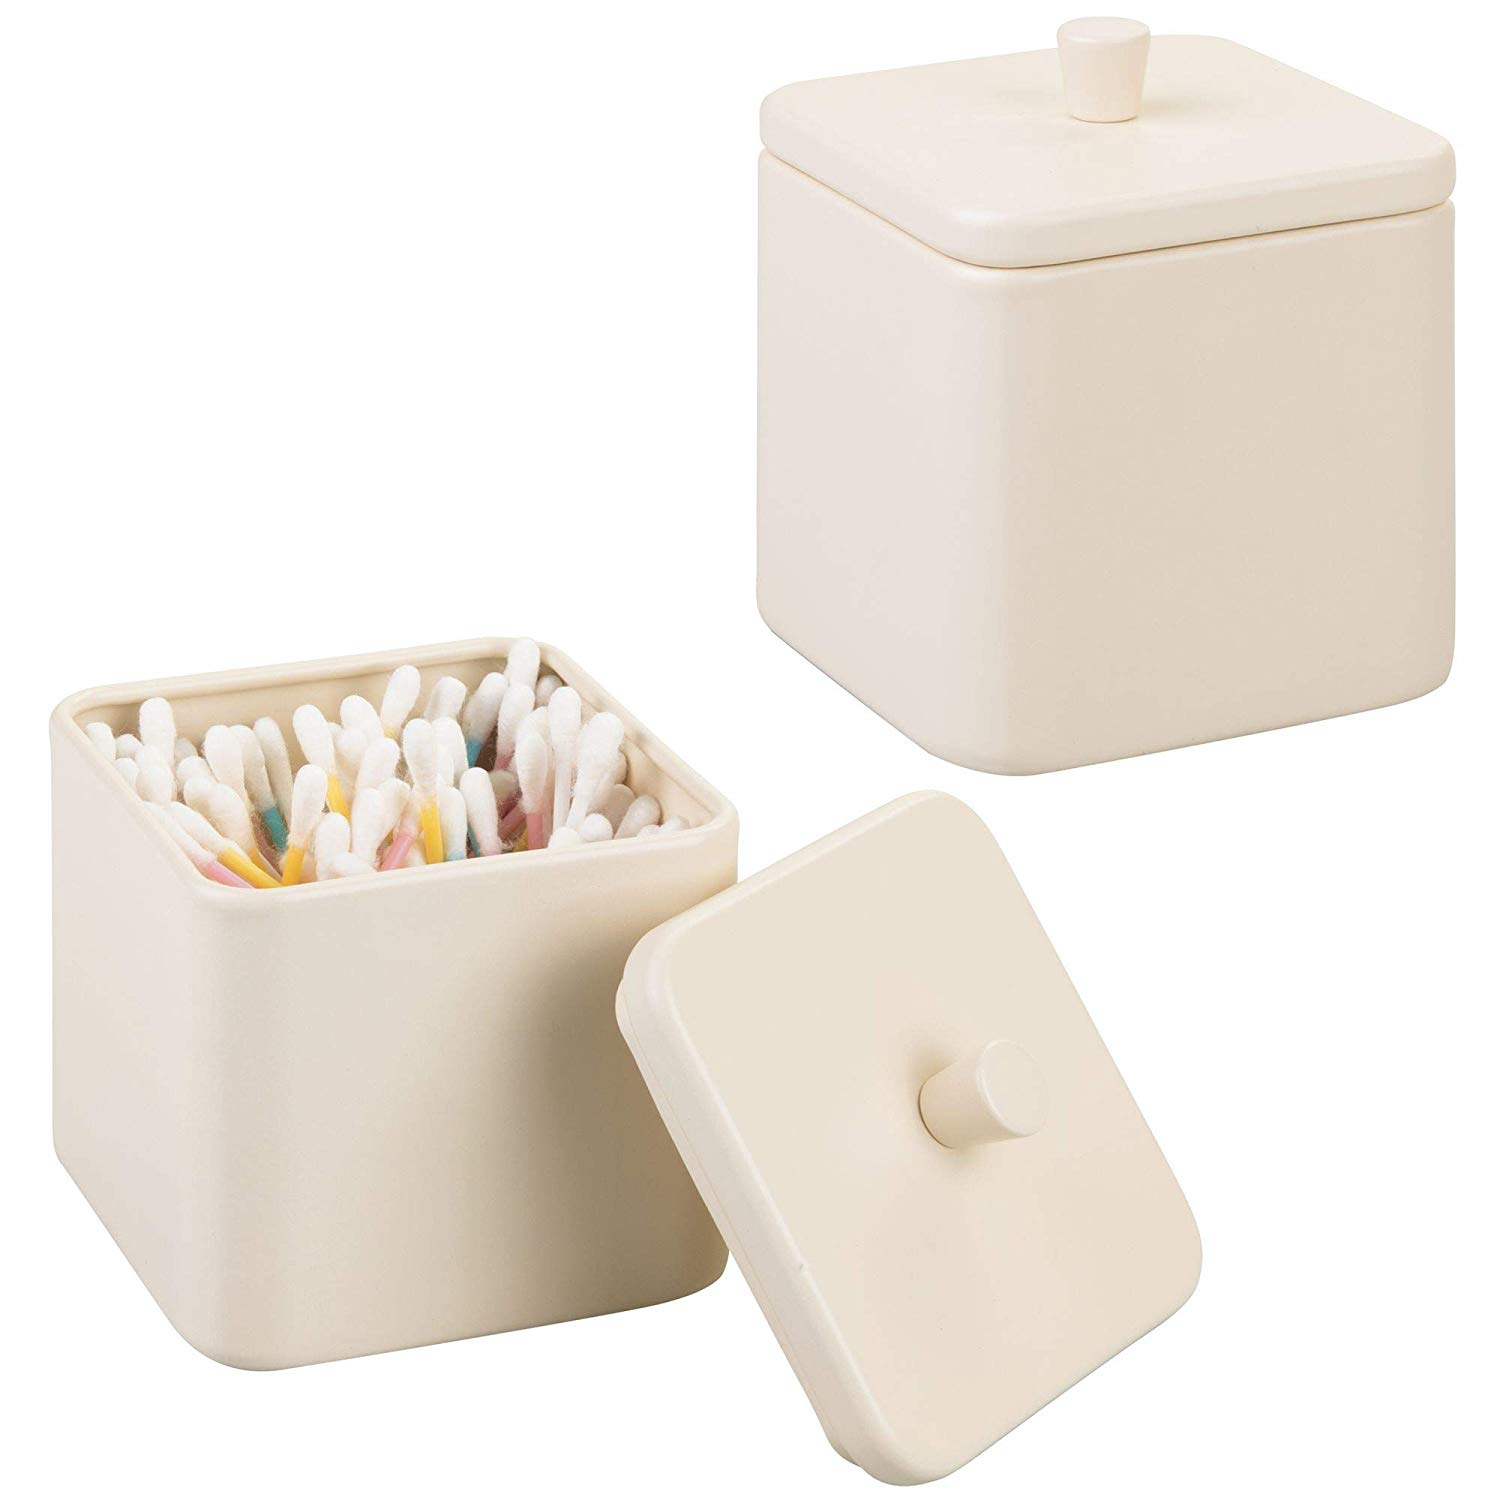 Mdesign Bathroom Vanity Countertop Storage Organizer Canister Jars within proportions 1500 X 1500